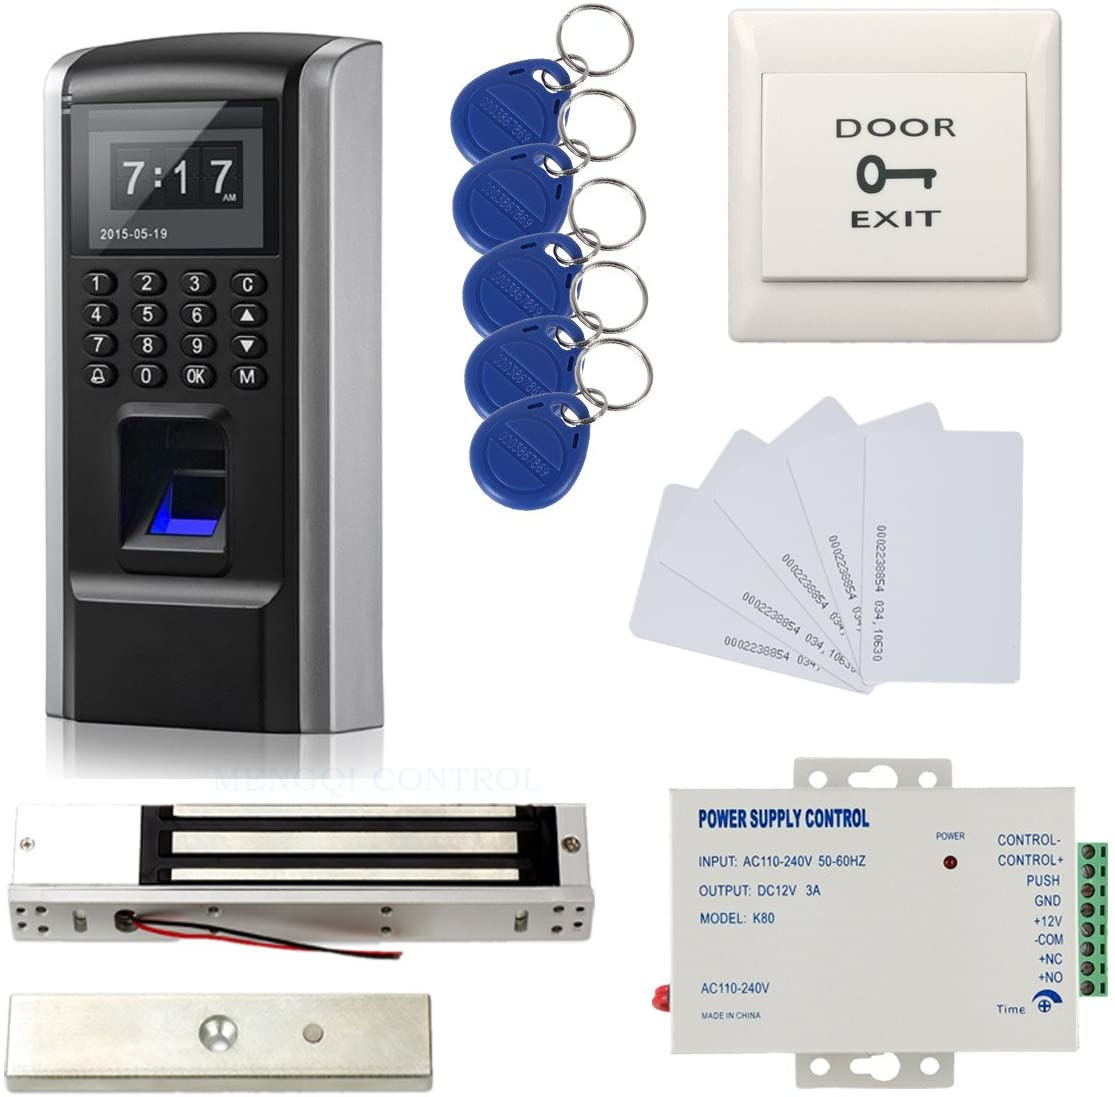 Full Kits Biometric Fingerprint RFID Password Access Control Systems + 600lbs Force Electric EM Magnetic Lock +110V Power Supply+10 Cards and Key Fobs